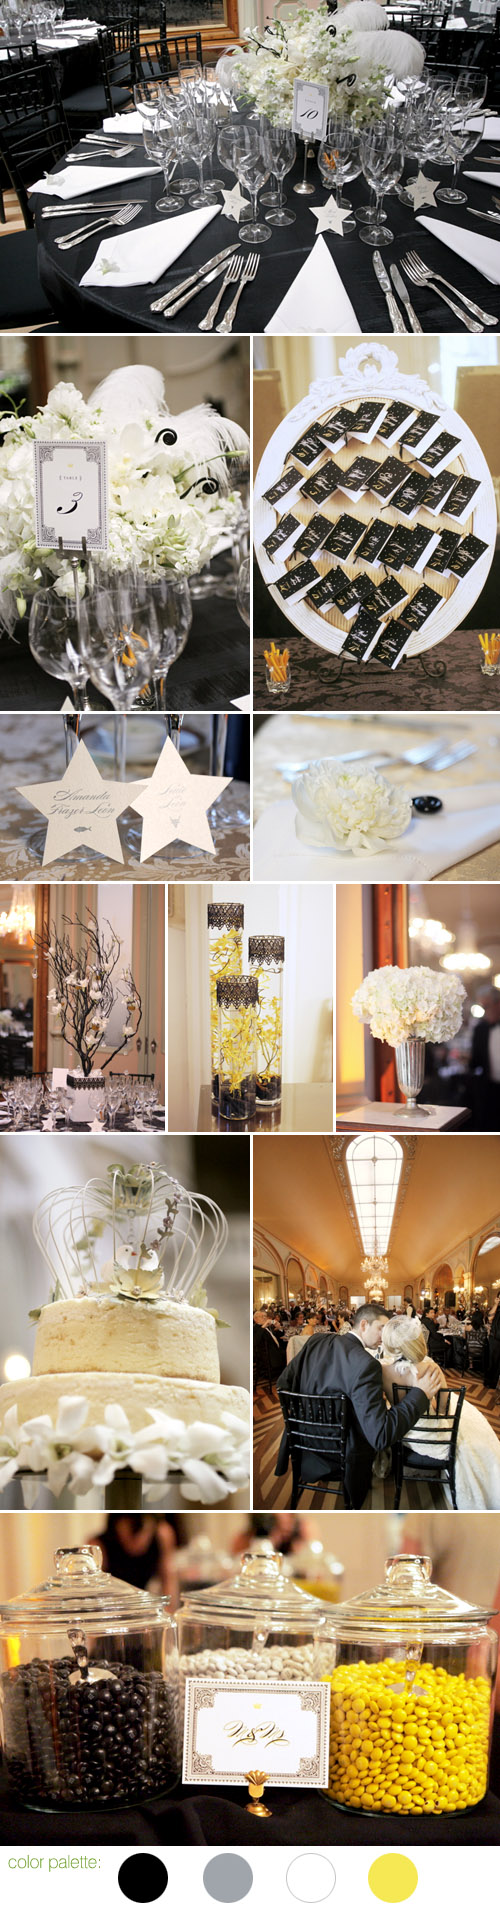 black, white, yellow and gray stylish California wedding style, photos by Michelle Walker Photography